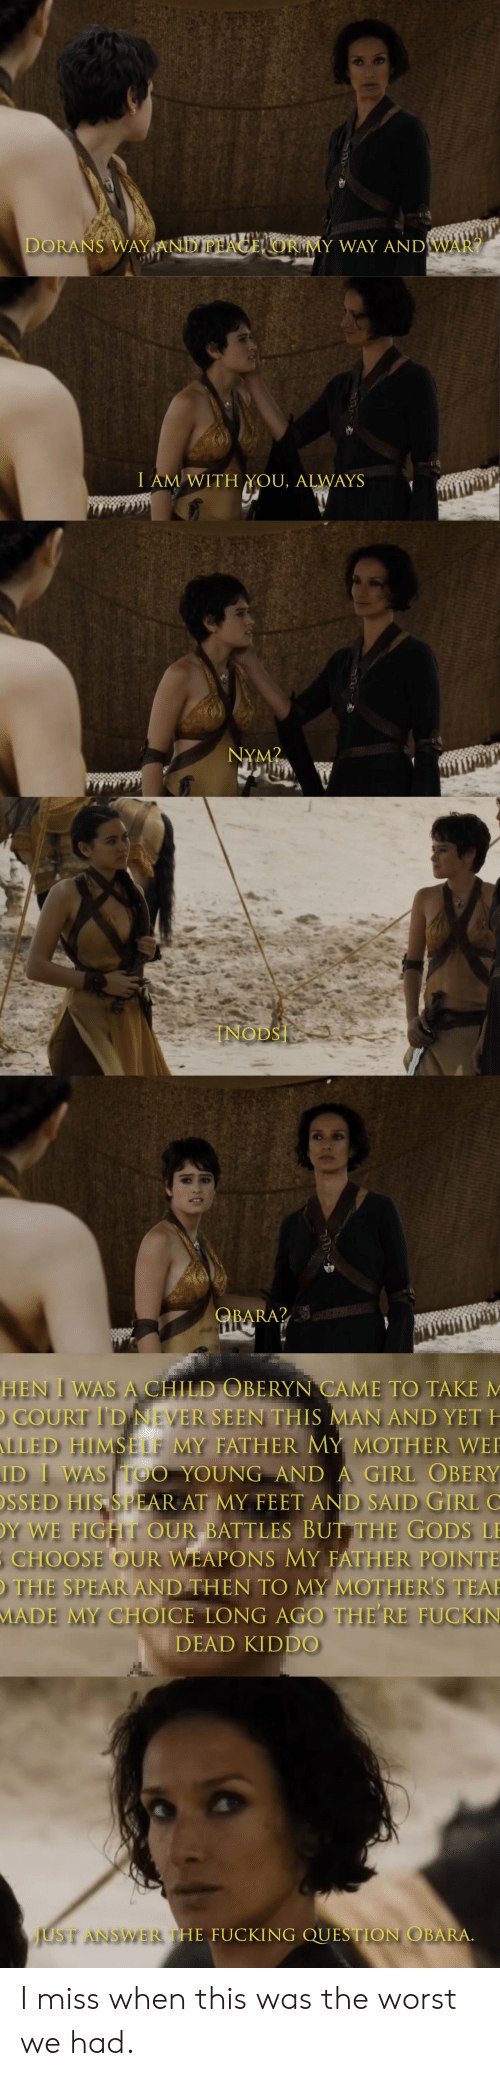 Fucking, The Worst, and Girl: DORANS WAY ANDPHAGEL OR MY WAY ANDWAR?  I AM WITH YOU, ALWAYS  NYM2  INODS  QBARA?  HEN I WAS A CHILD OBERYN CAME TO TAKE M  COURT I'D NEVER SEEN THIS MAN AND YET H  LLED HIMSELF MY FATHER MY MOTHER WE  ID I WAS TOO YOUNG AND A GIRL OBERY  SSED HIS SPEAR AT MY FEET AND SAID GIRL  Y WE FIGHT OUR BATTLES BUT THE GODS L  CHOOSE OUR WEAPONS MY FATHER POINTE  THE SPEAR AND THEN TO MY MOTHER'S TEA  MADE MY CHOICE LONG AGO THE RE FUCKIN  DEAD KIDDO  JUST ANSWER THE FUCKING QUESTION OBARA. I miss when this was the worst we had.